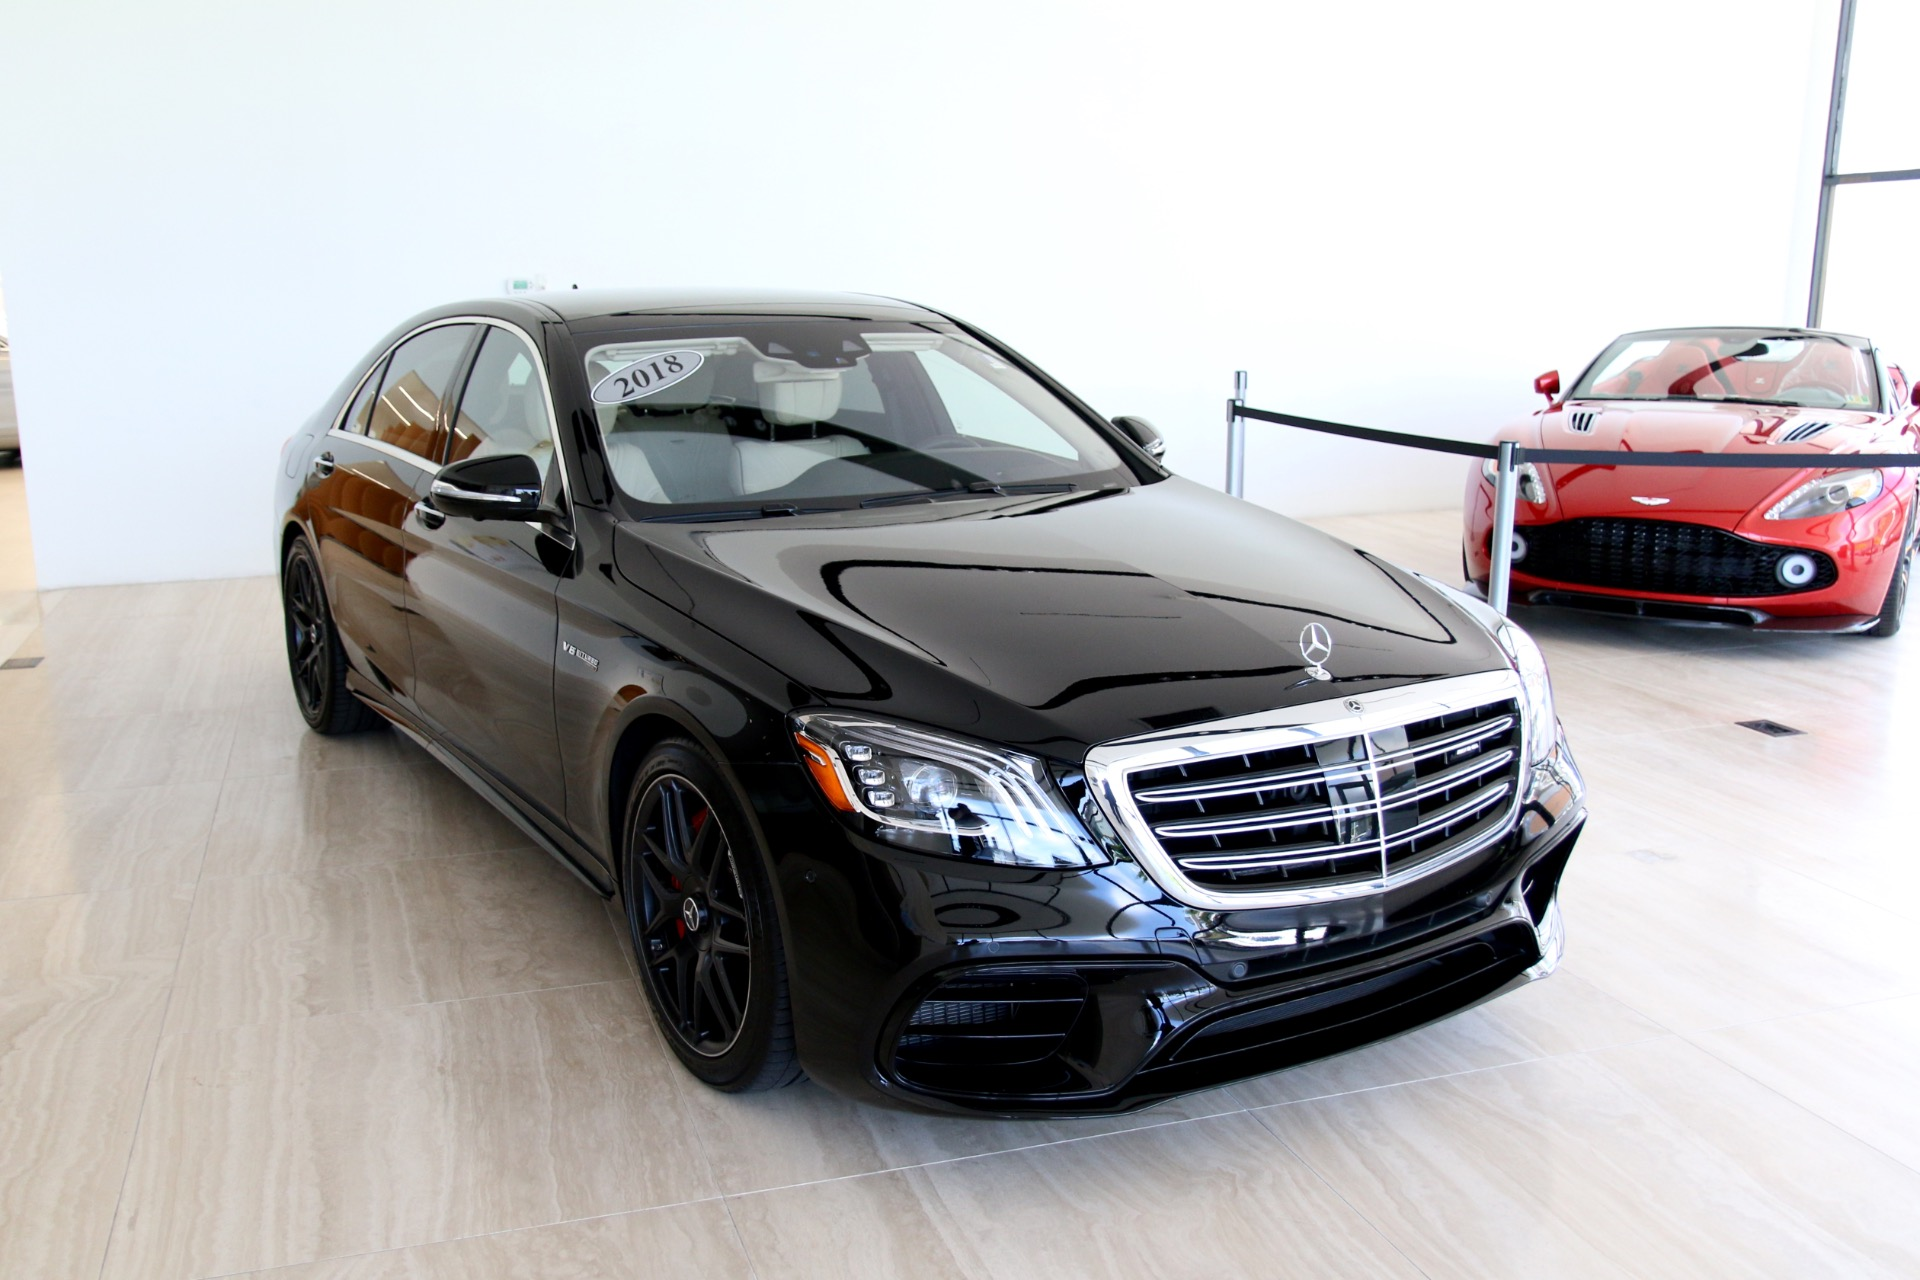 2018 Mercedes Benz S Class Amg S63 Stock 8n022795a For Sale Near Used Vienna Va